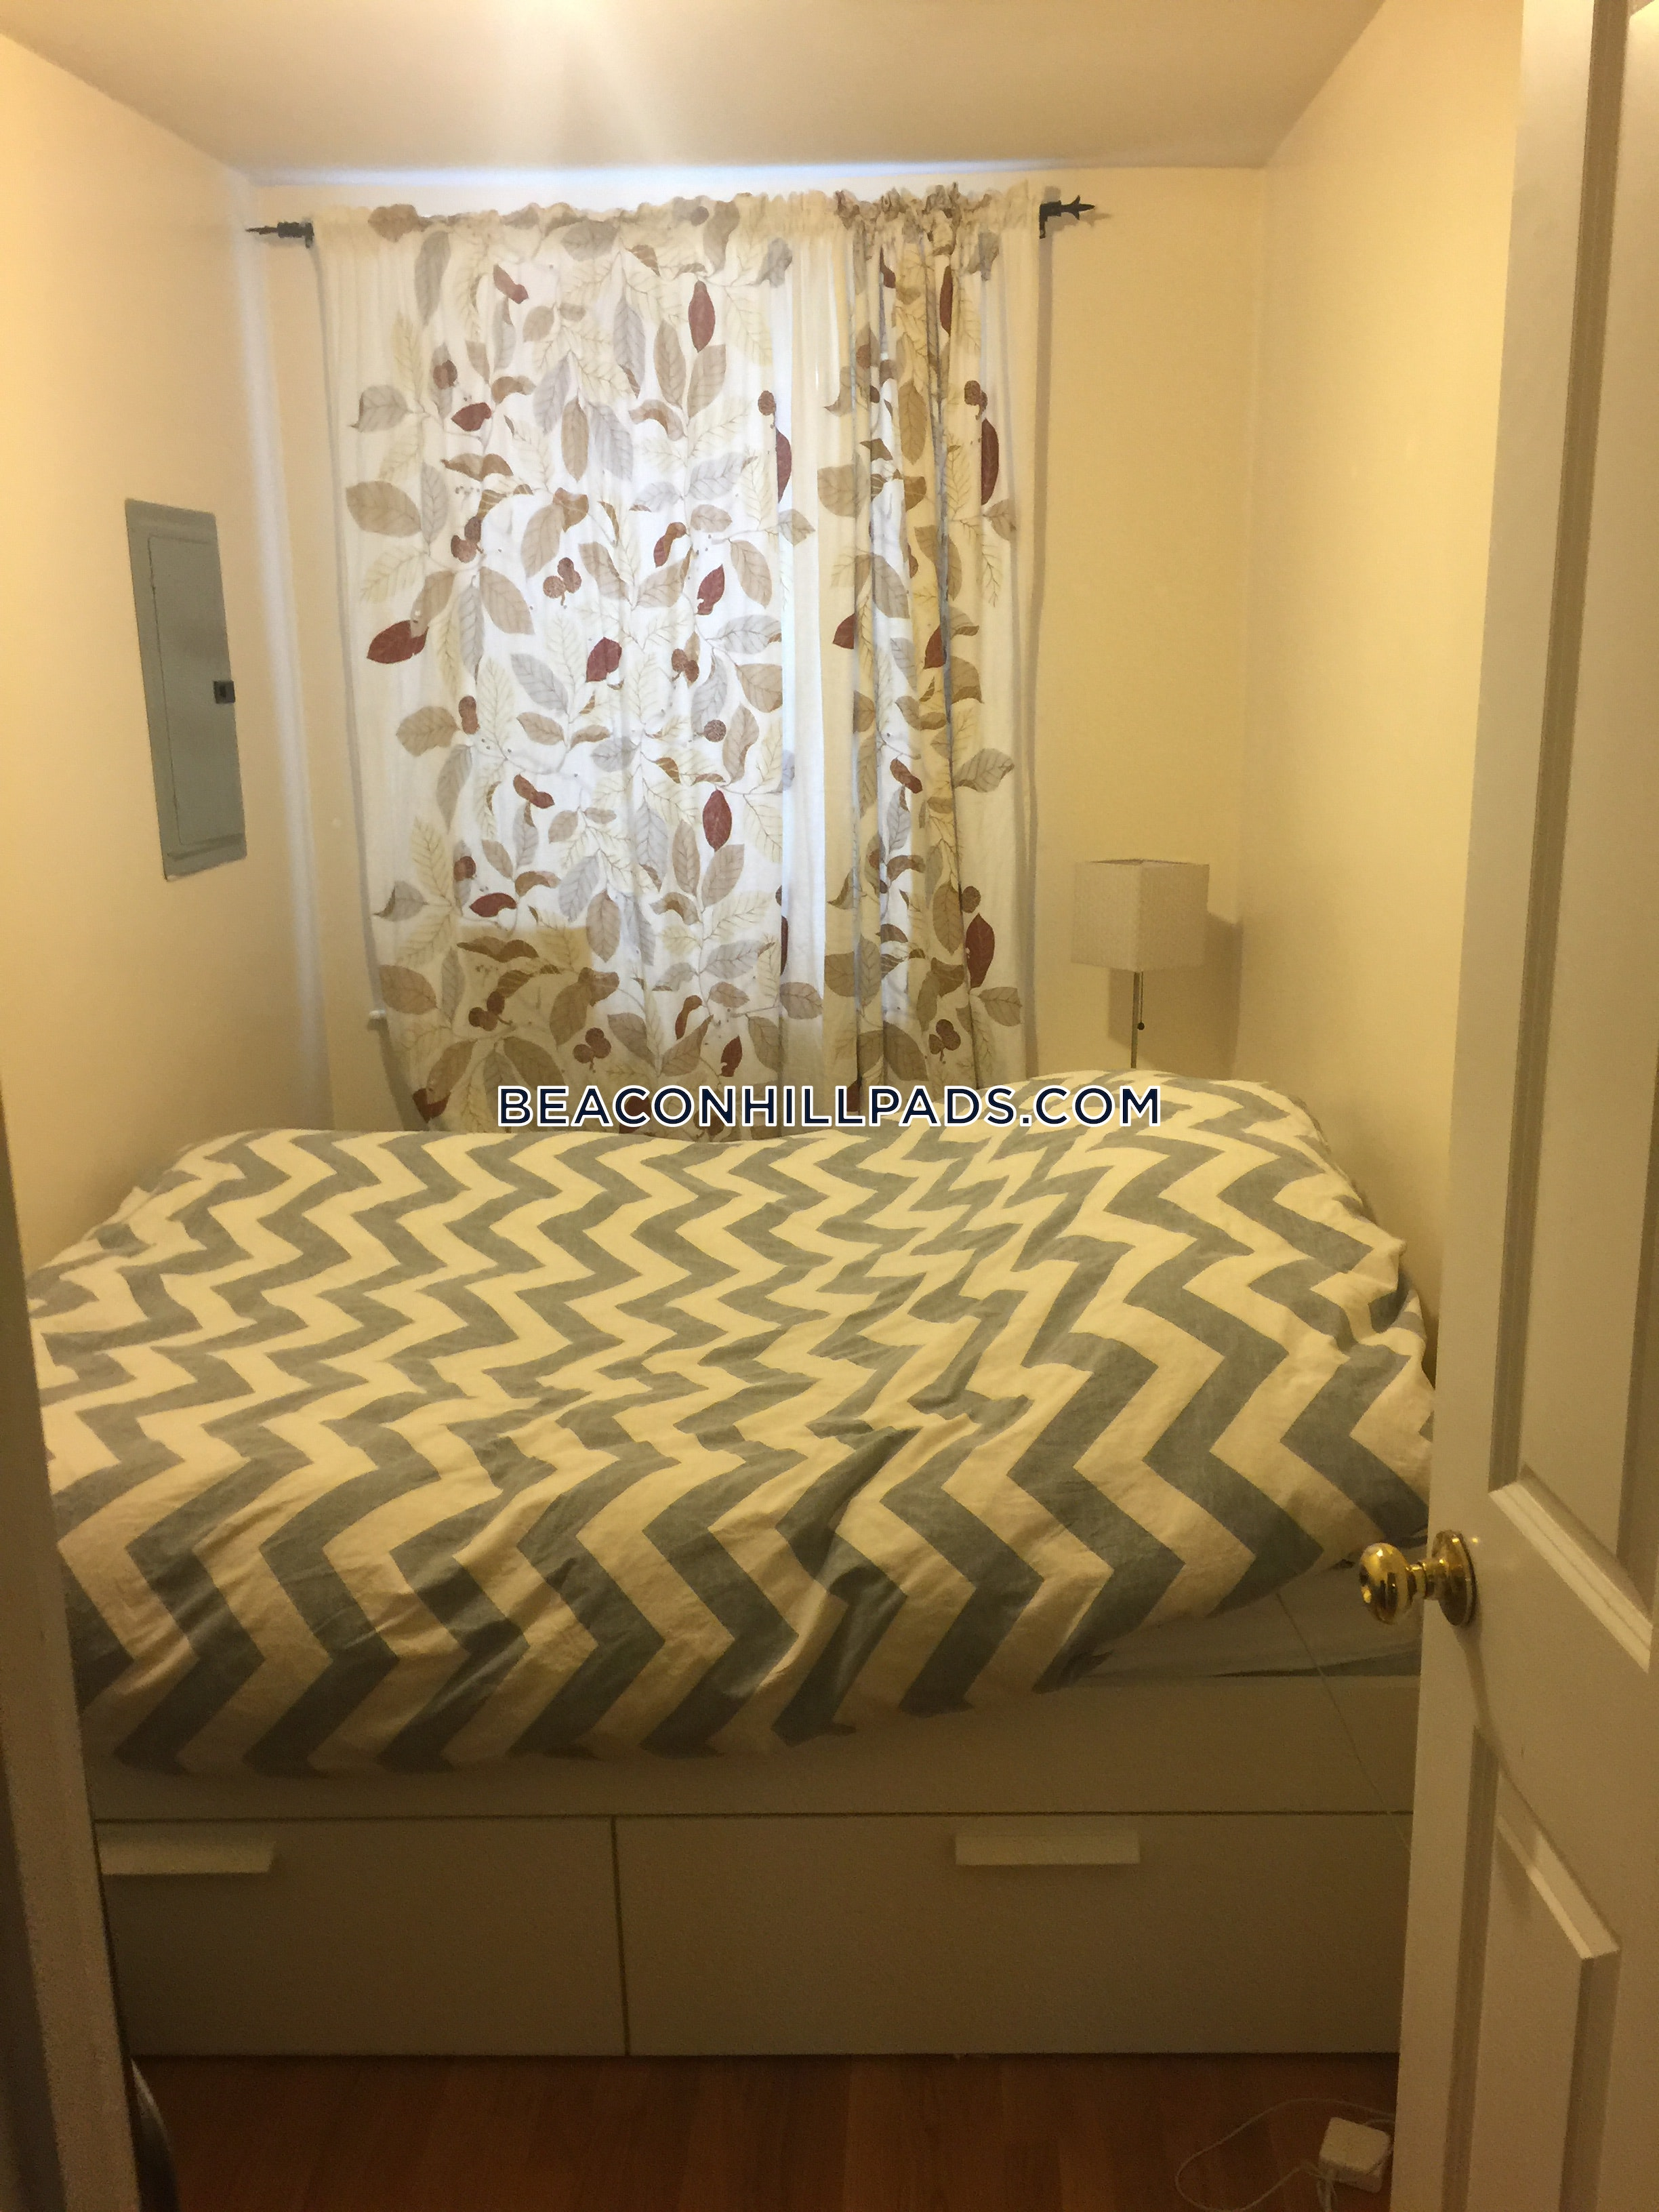 2 Beds 2 Baths - Boston - Beacon Hill $3,250